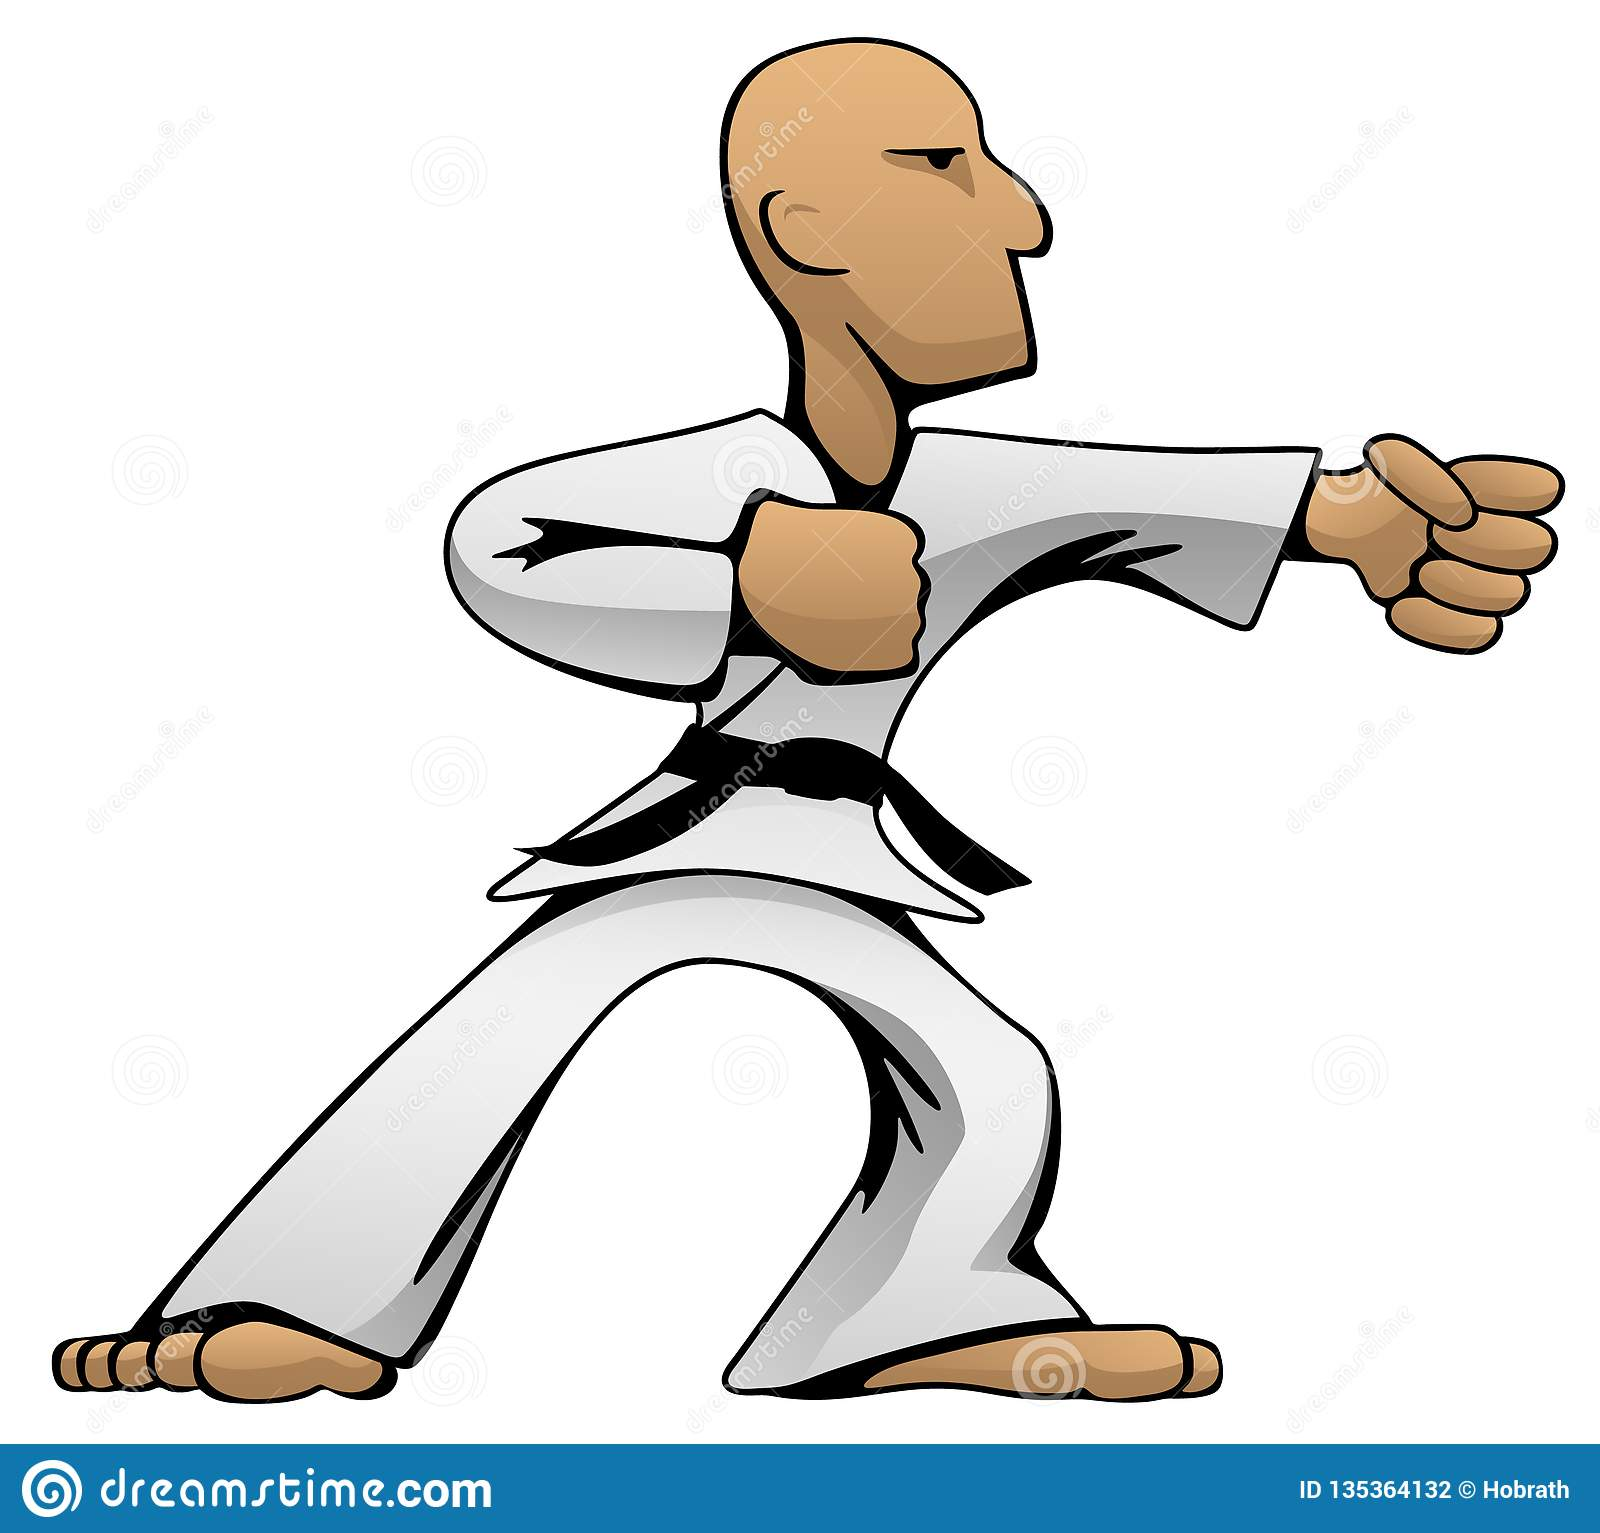 Karate Guy Cartoon Vector Color Illustration de los artes marciales